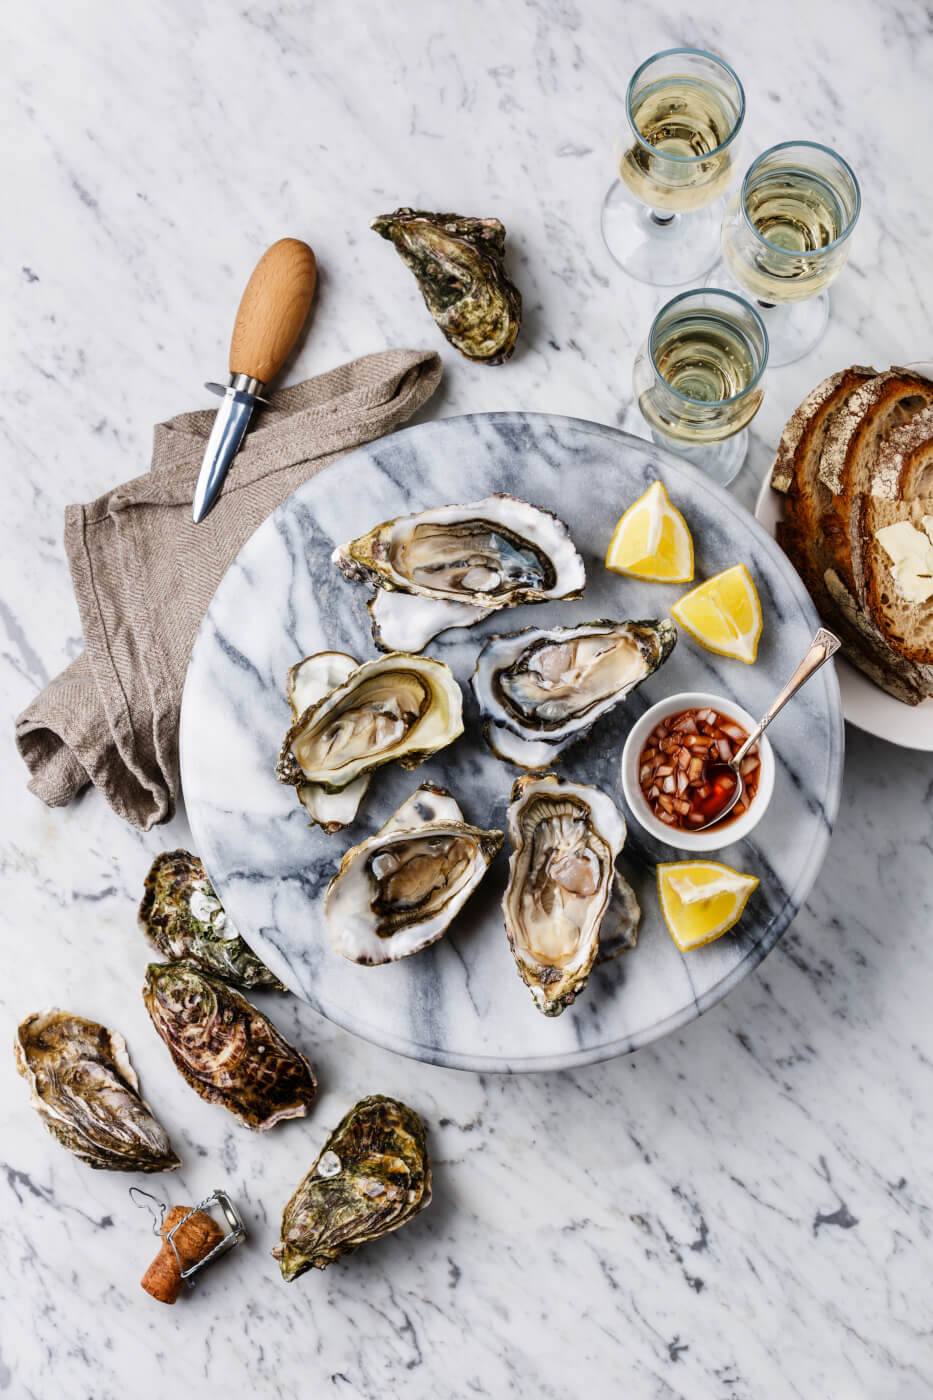 Oysters on marble background with lemon.